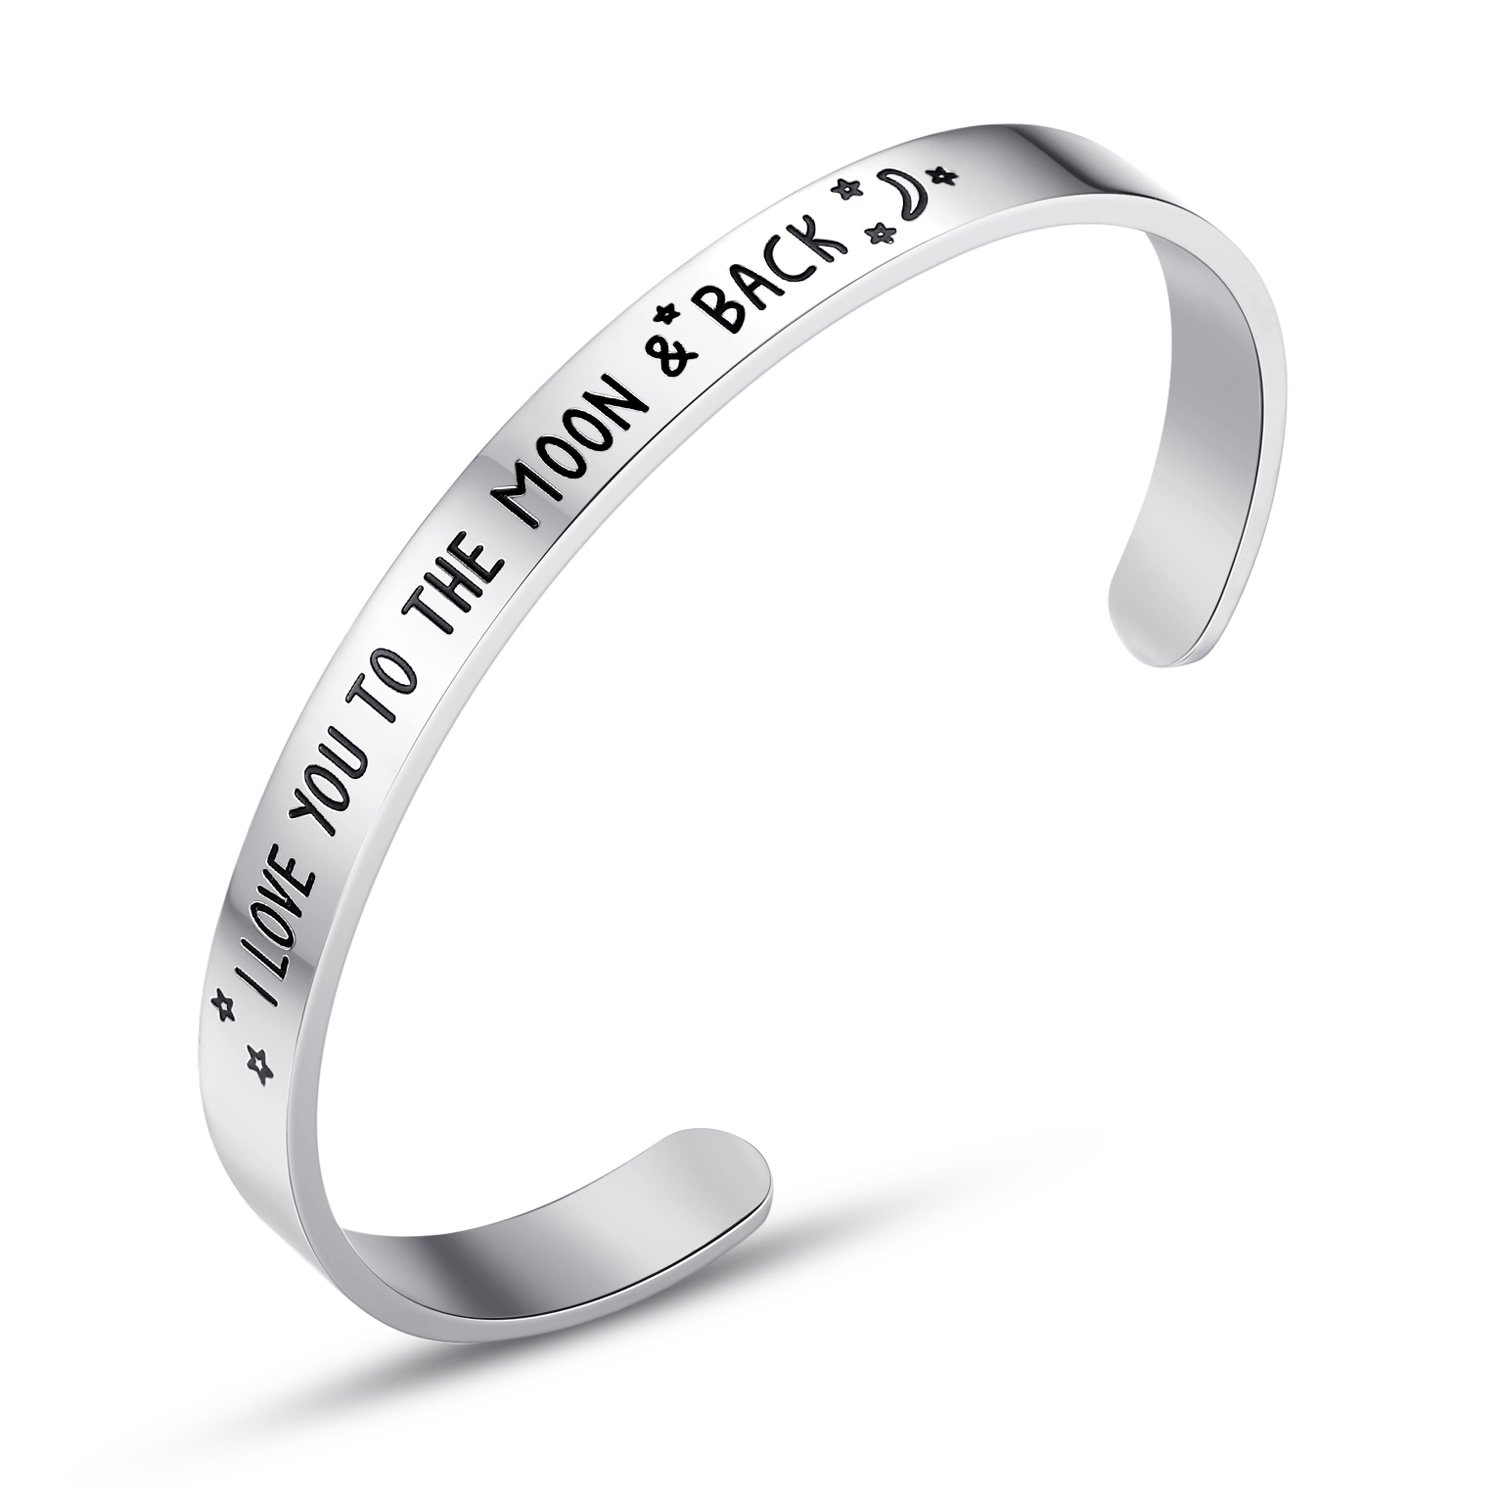 I Love You To The Moon And Back' Cuff Bracelets, Jewelry for Women, Girls, Gifts for Her, Wife, Mother, Mom, Grandma, Girlfriend, Lover, Valentine's Day, Anniversary, Christmas day gifts (Silver)